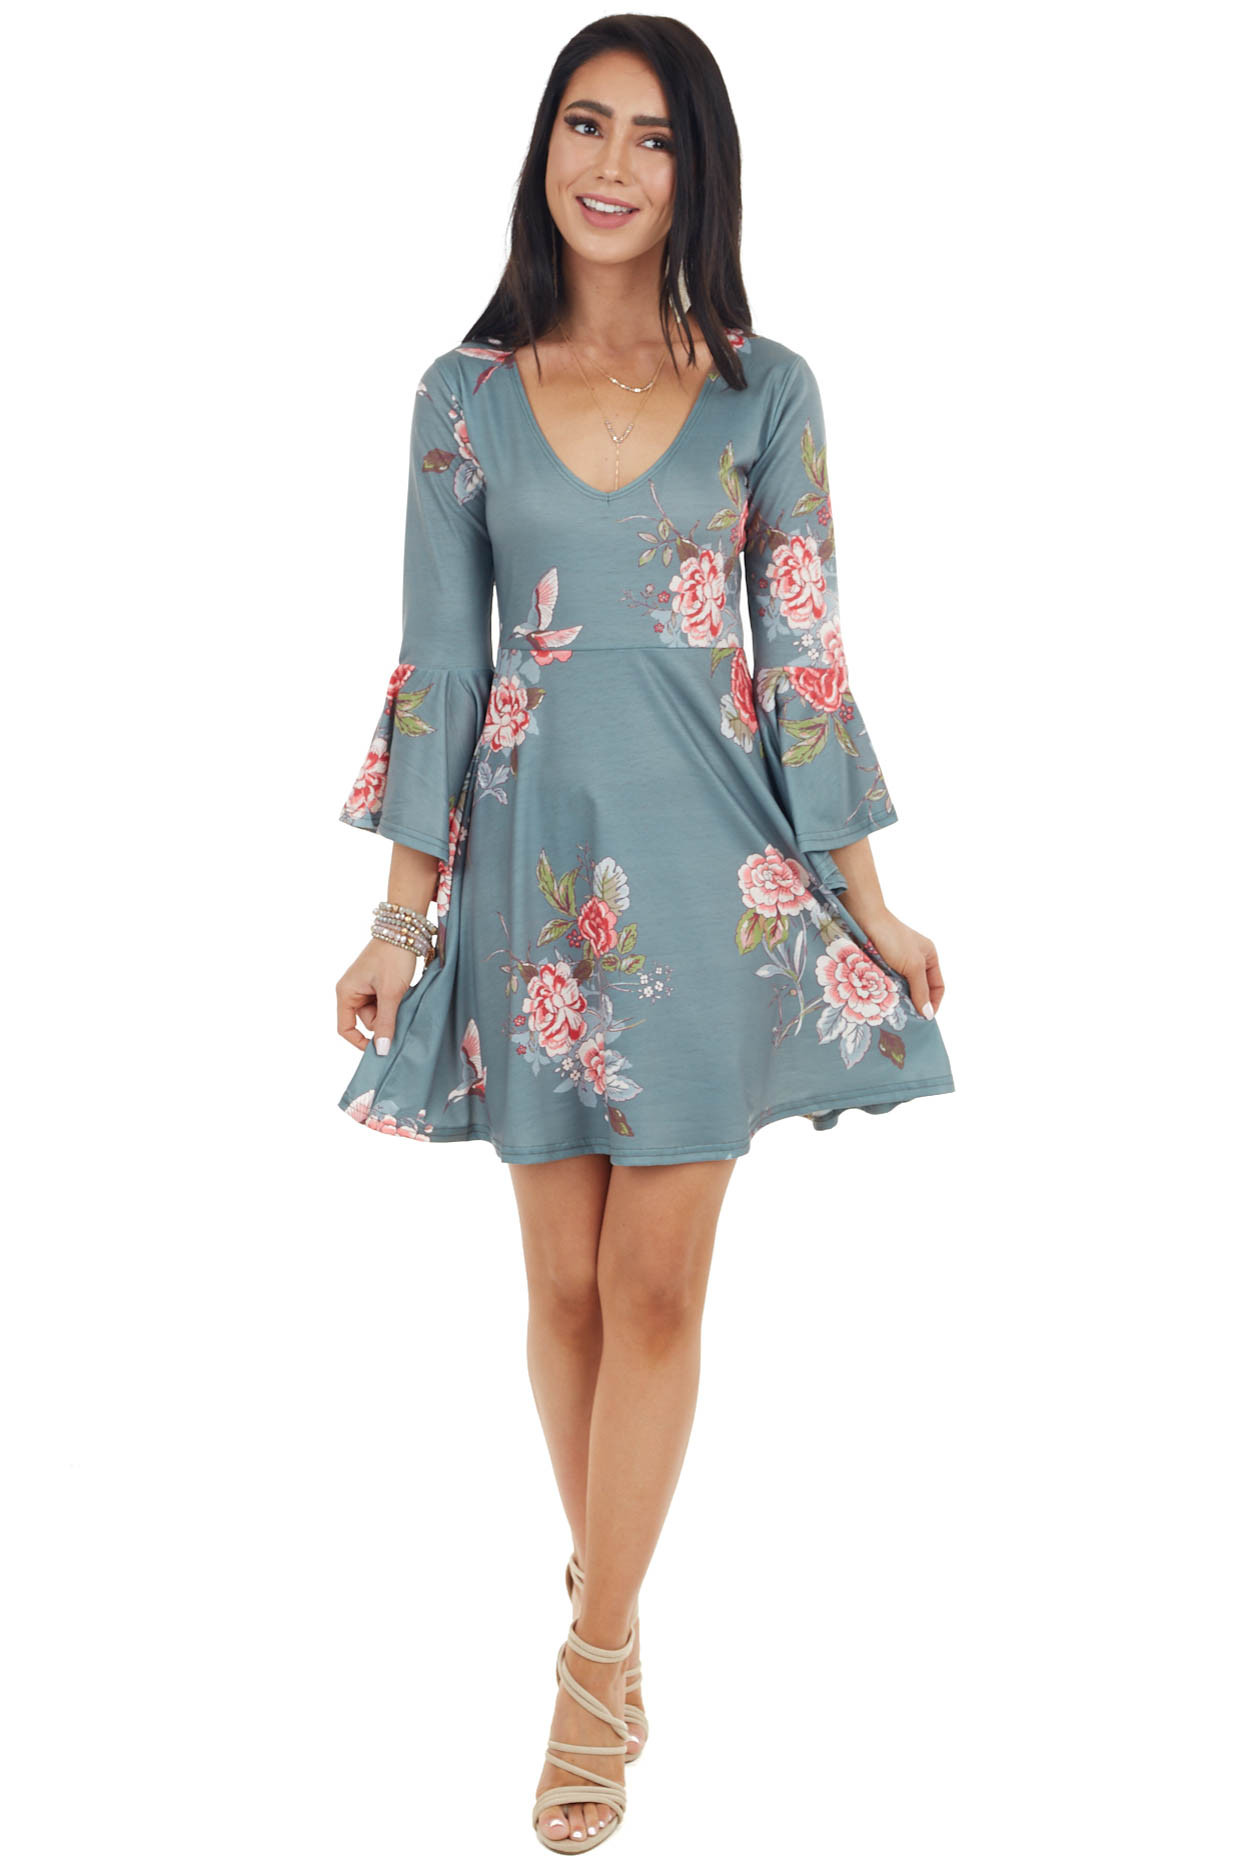 Faded Sage Floral Print Mini Dress with Bell Sleeves